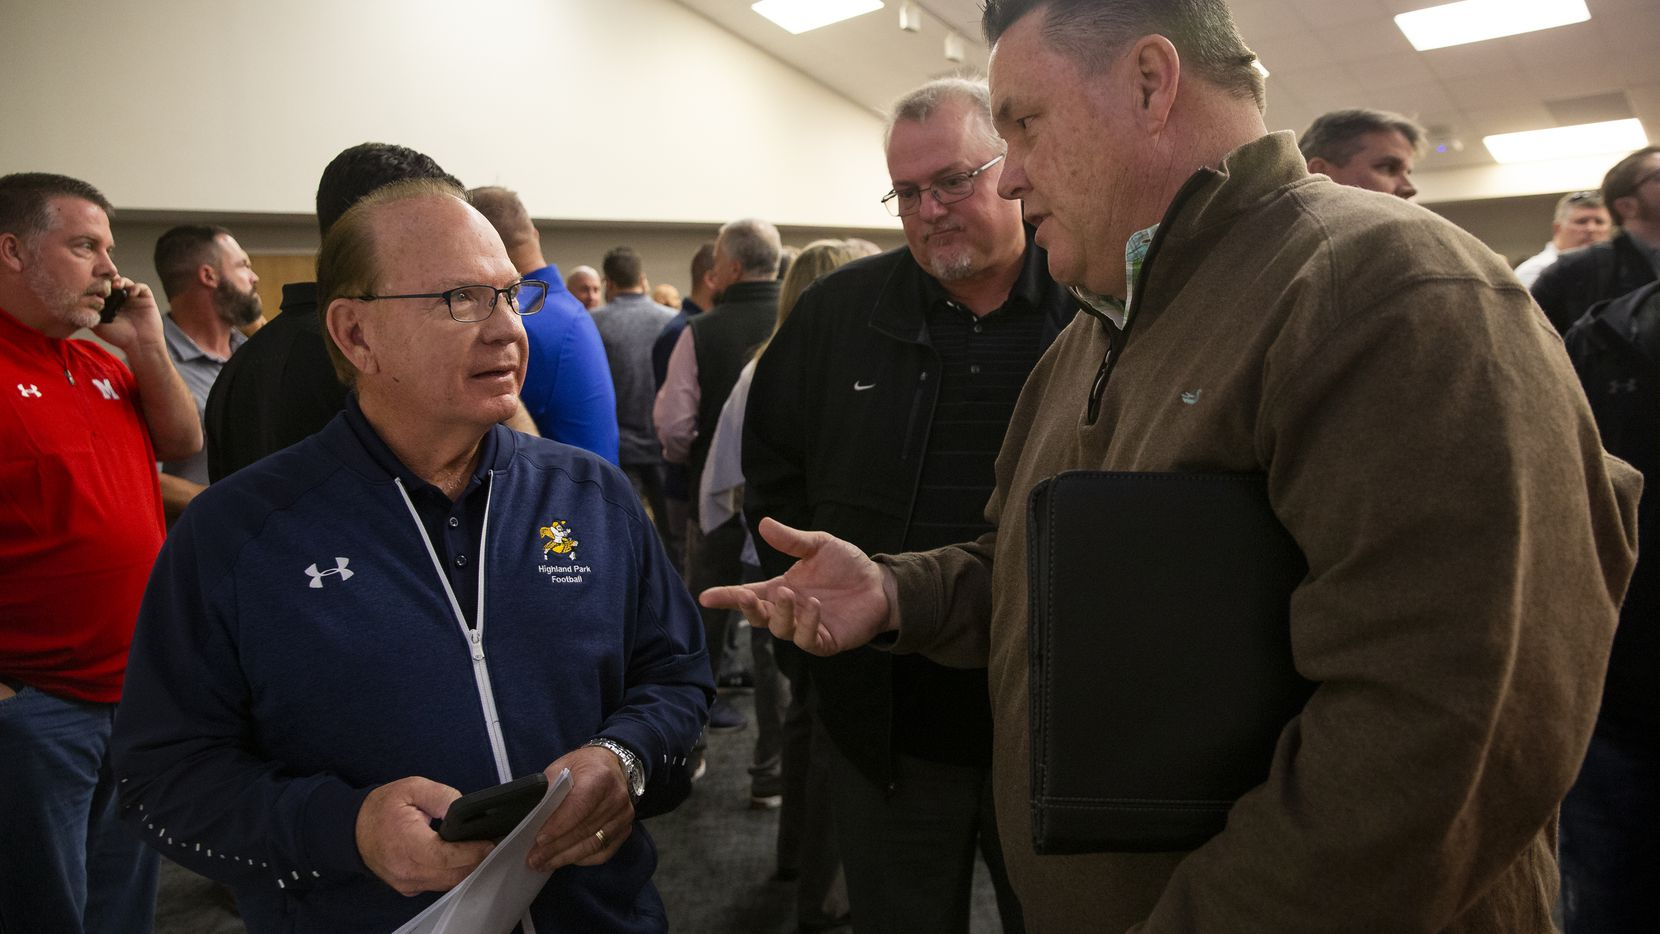 Highland Park football coach Randy Allen (left) and Rodney Webb, now the coach at Denton Guyer, chat after the UIL realignment announcement at the Birdville Fine Arts/Athletics Complex on Feb. 3, 2020.